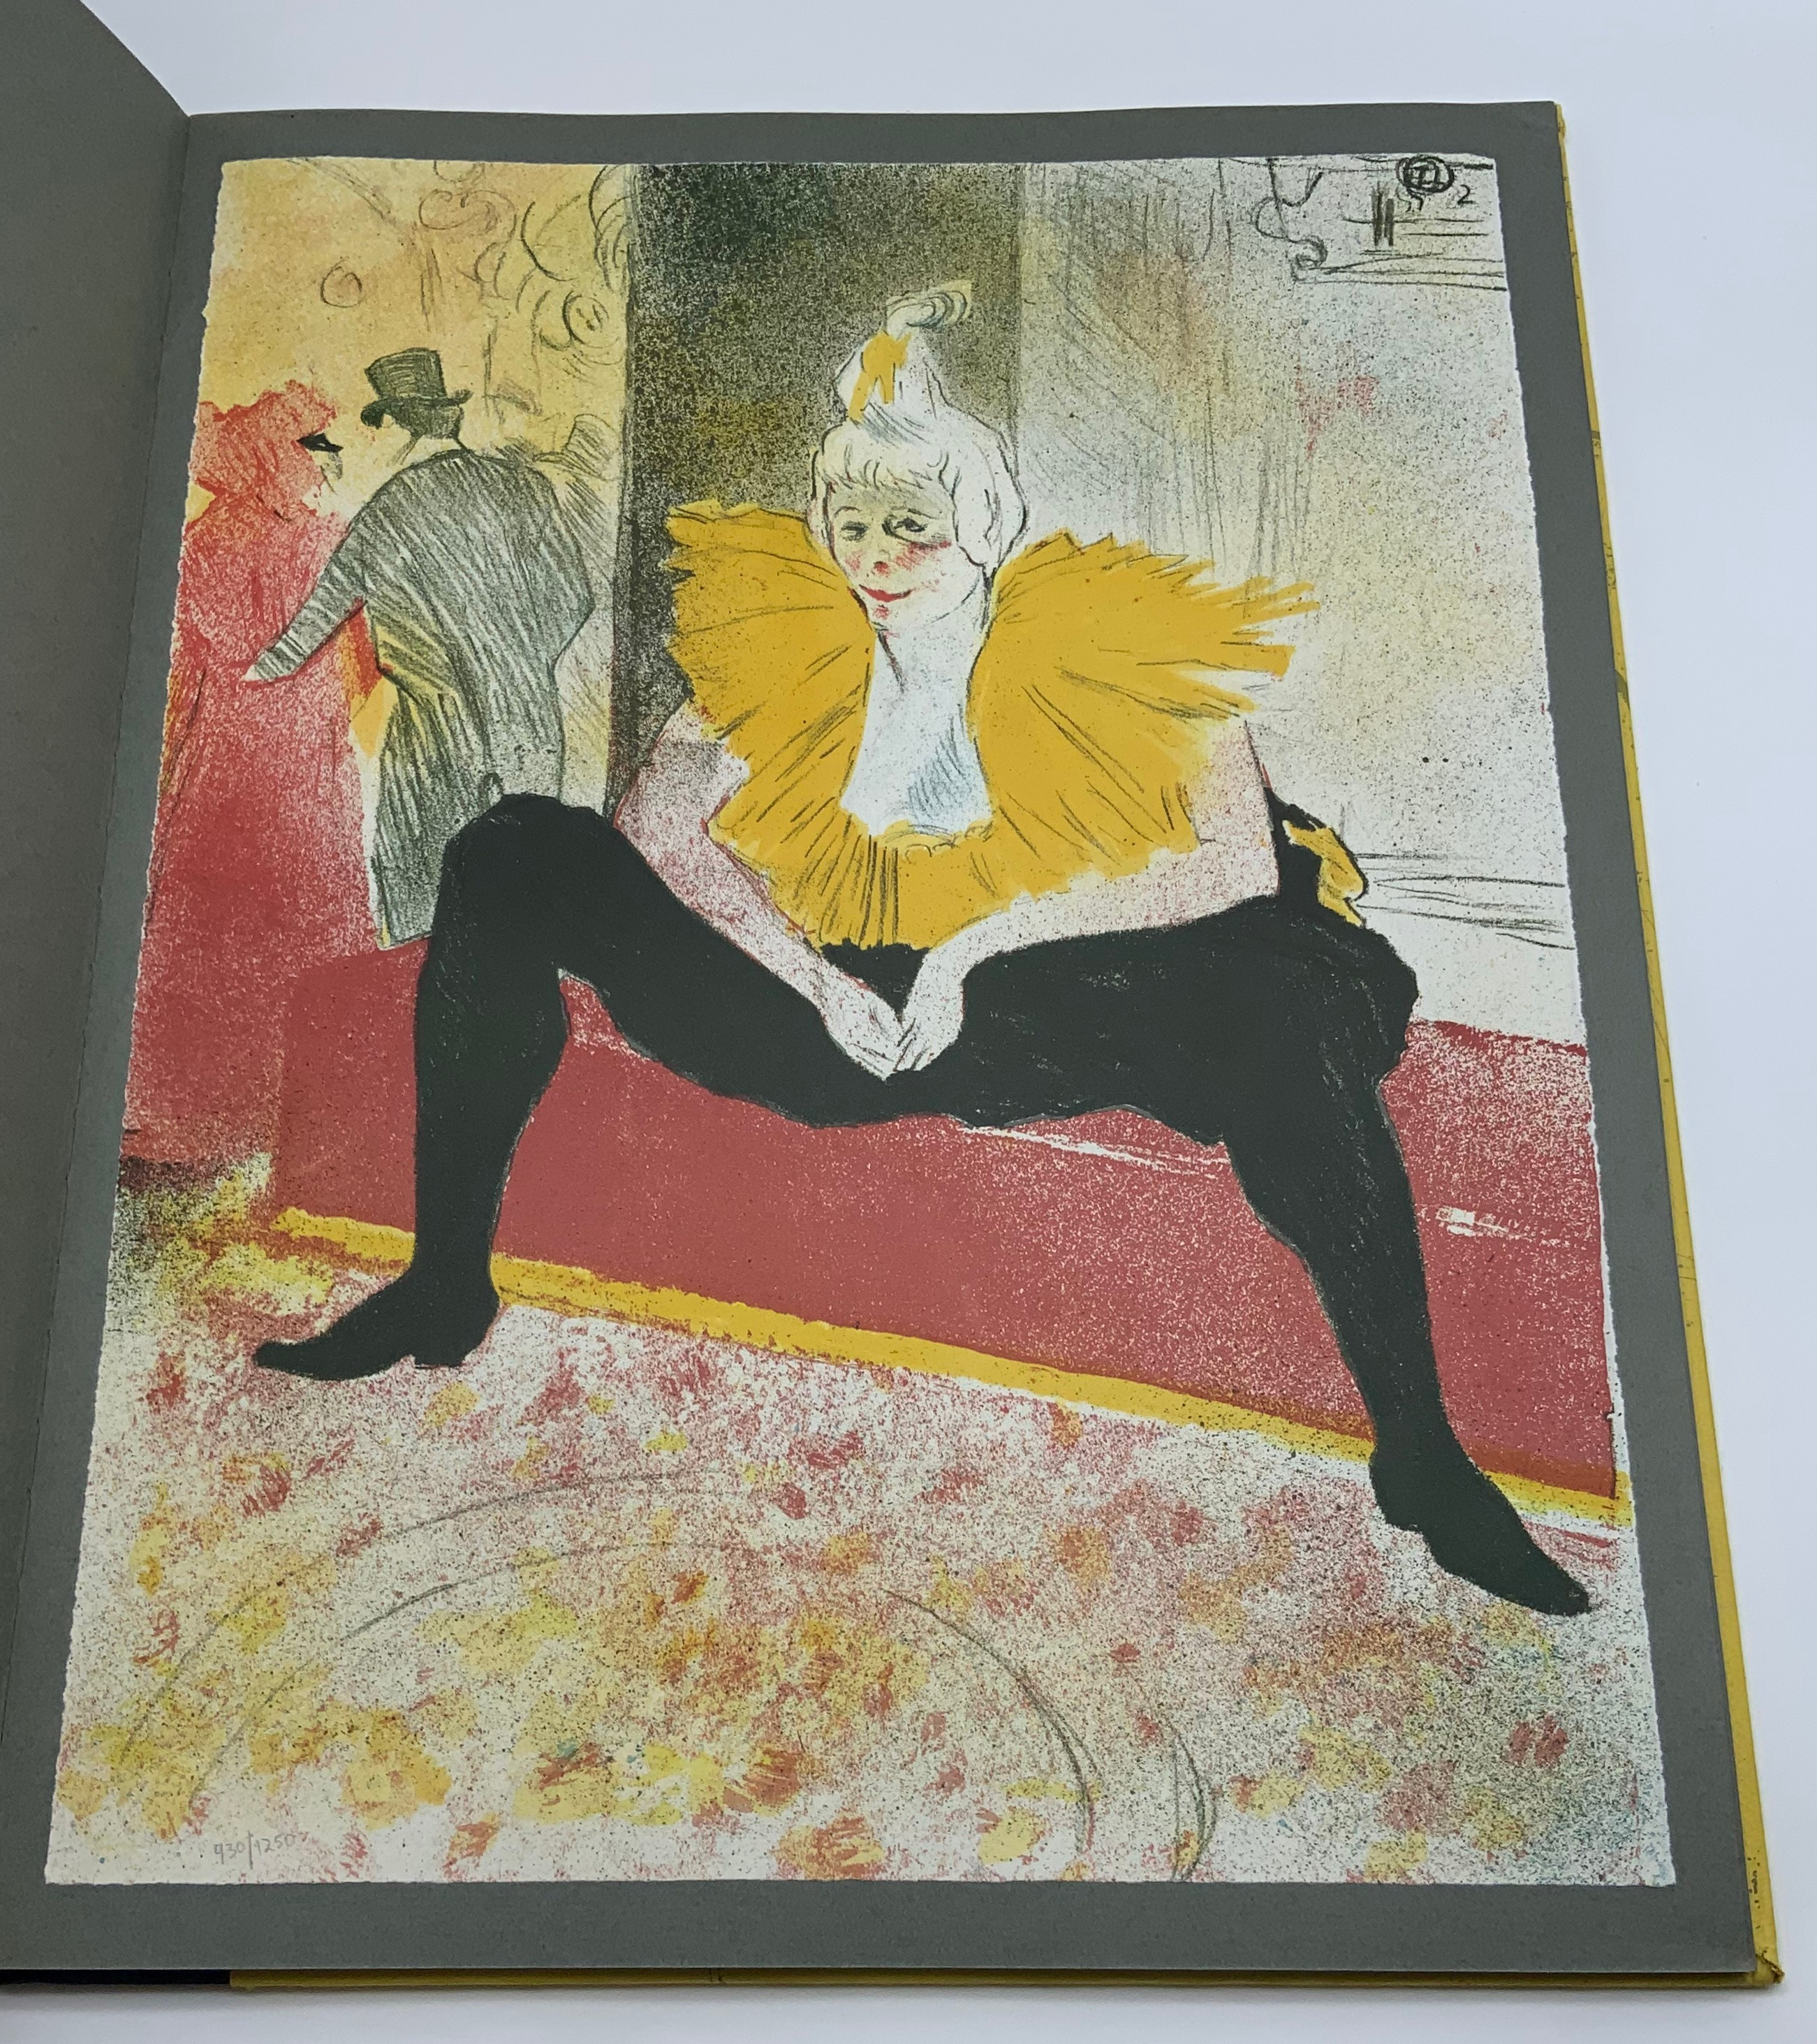 ELLES THE TOULOUSE-LAUTREC CIRCLE, 1969 HARDCOVER 1ST EDITION LIMITED EDITION